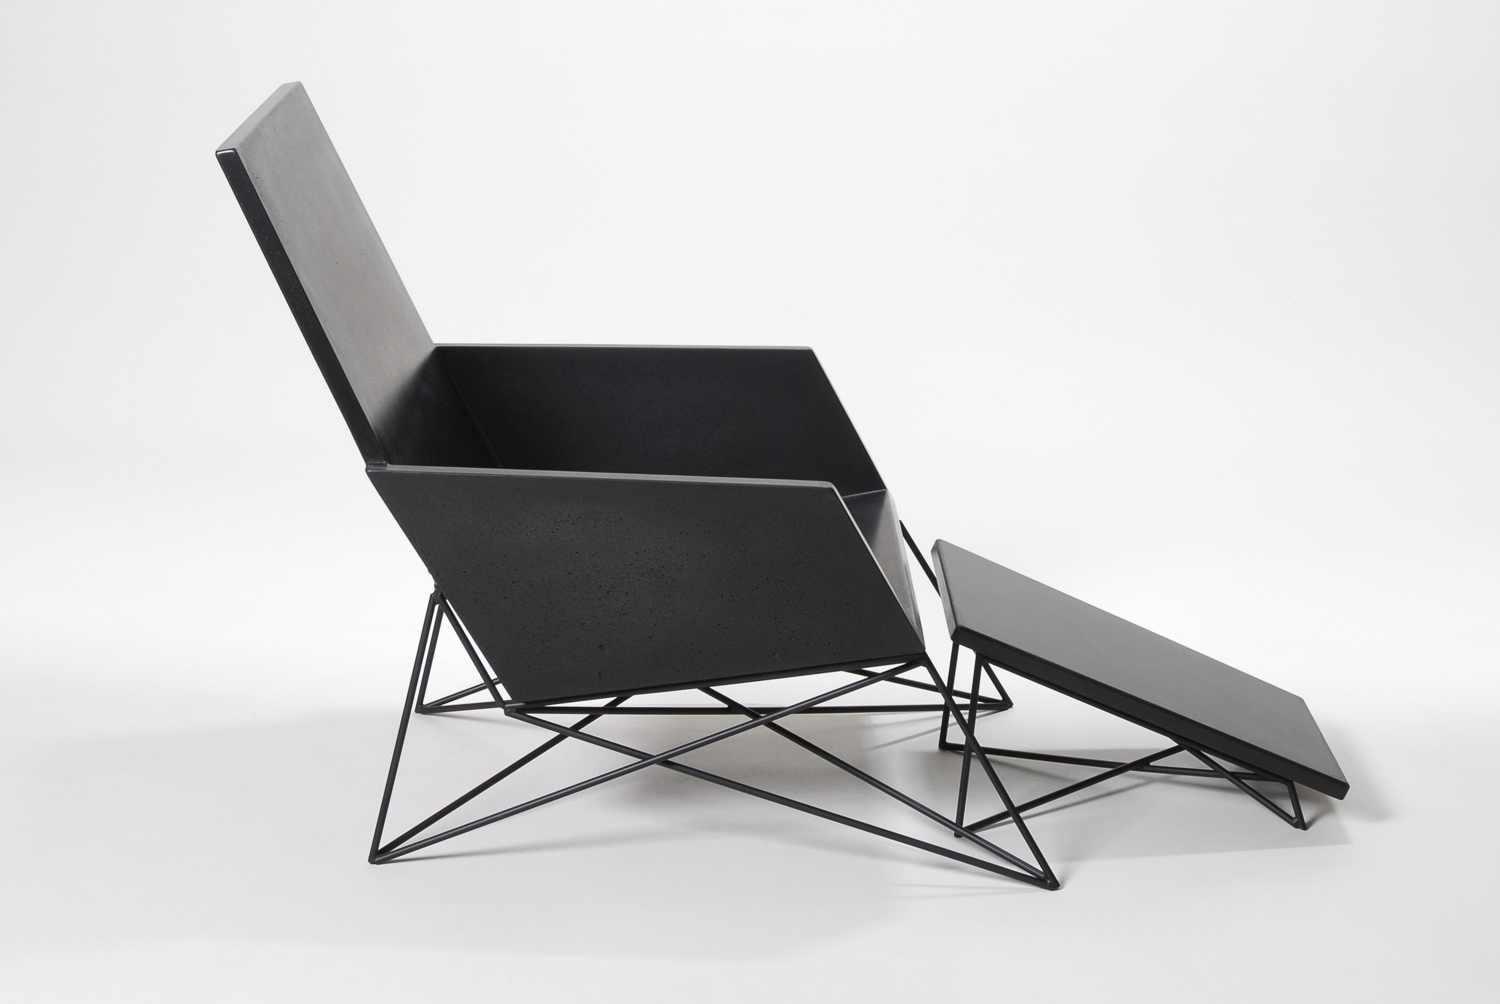 Hard Goods Concrete and Steel Modern Muskoka Outdoor Chair Carbon Edition with Ottoman